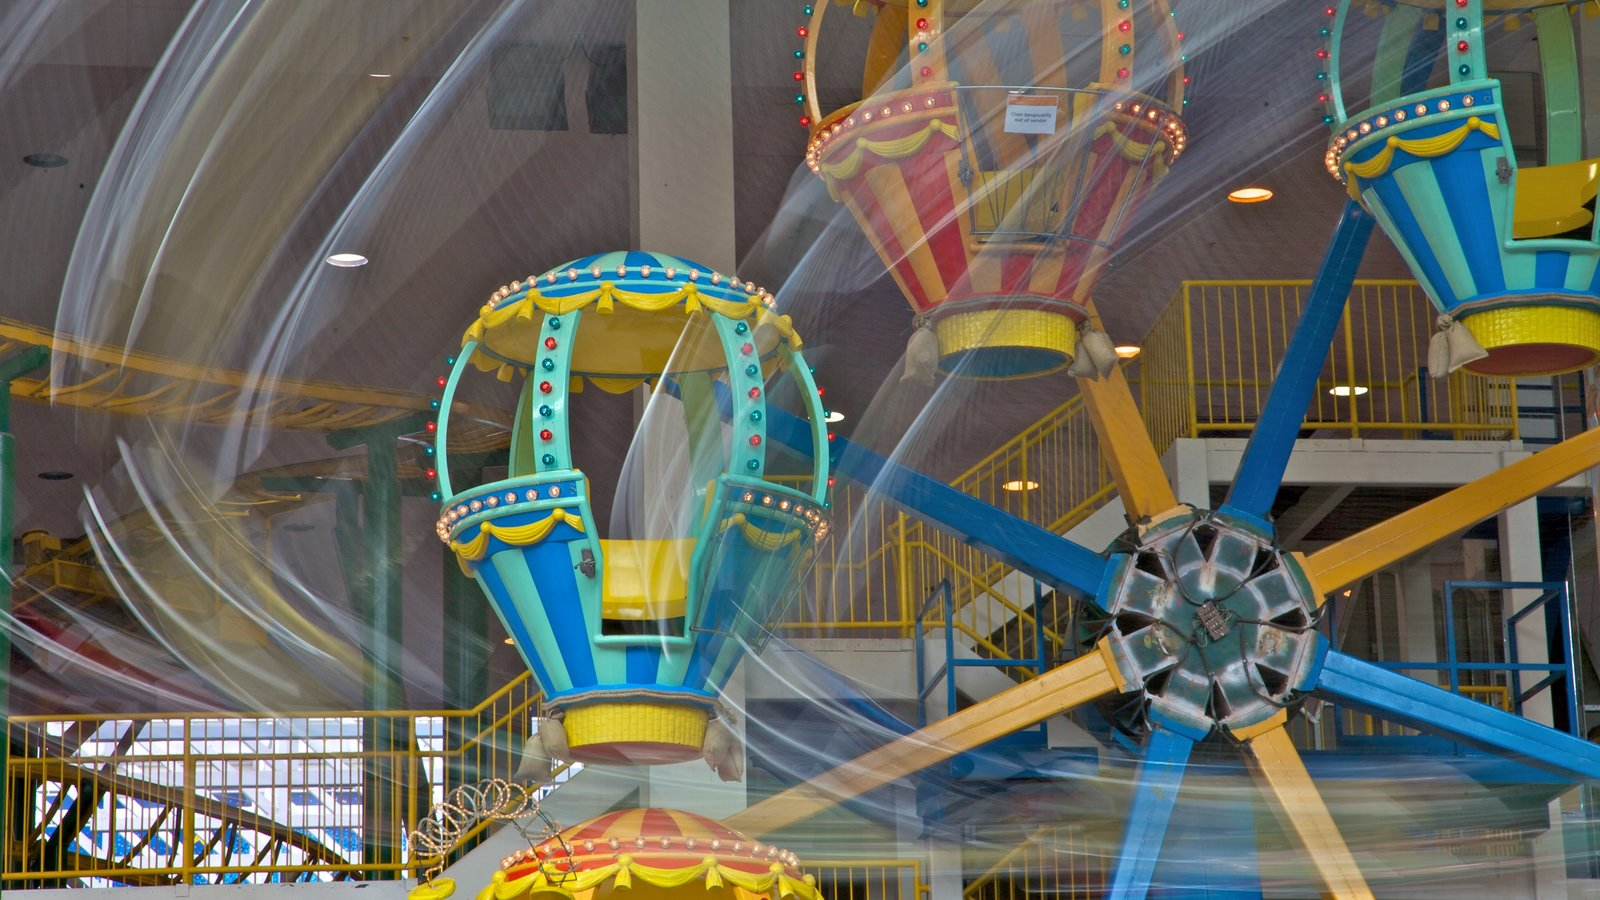 West Edmonton Mall featuring a playground, rides and interior views